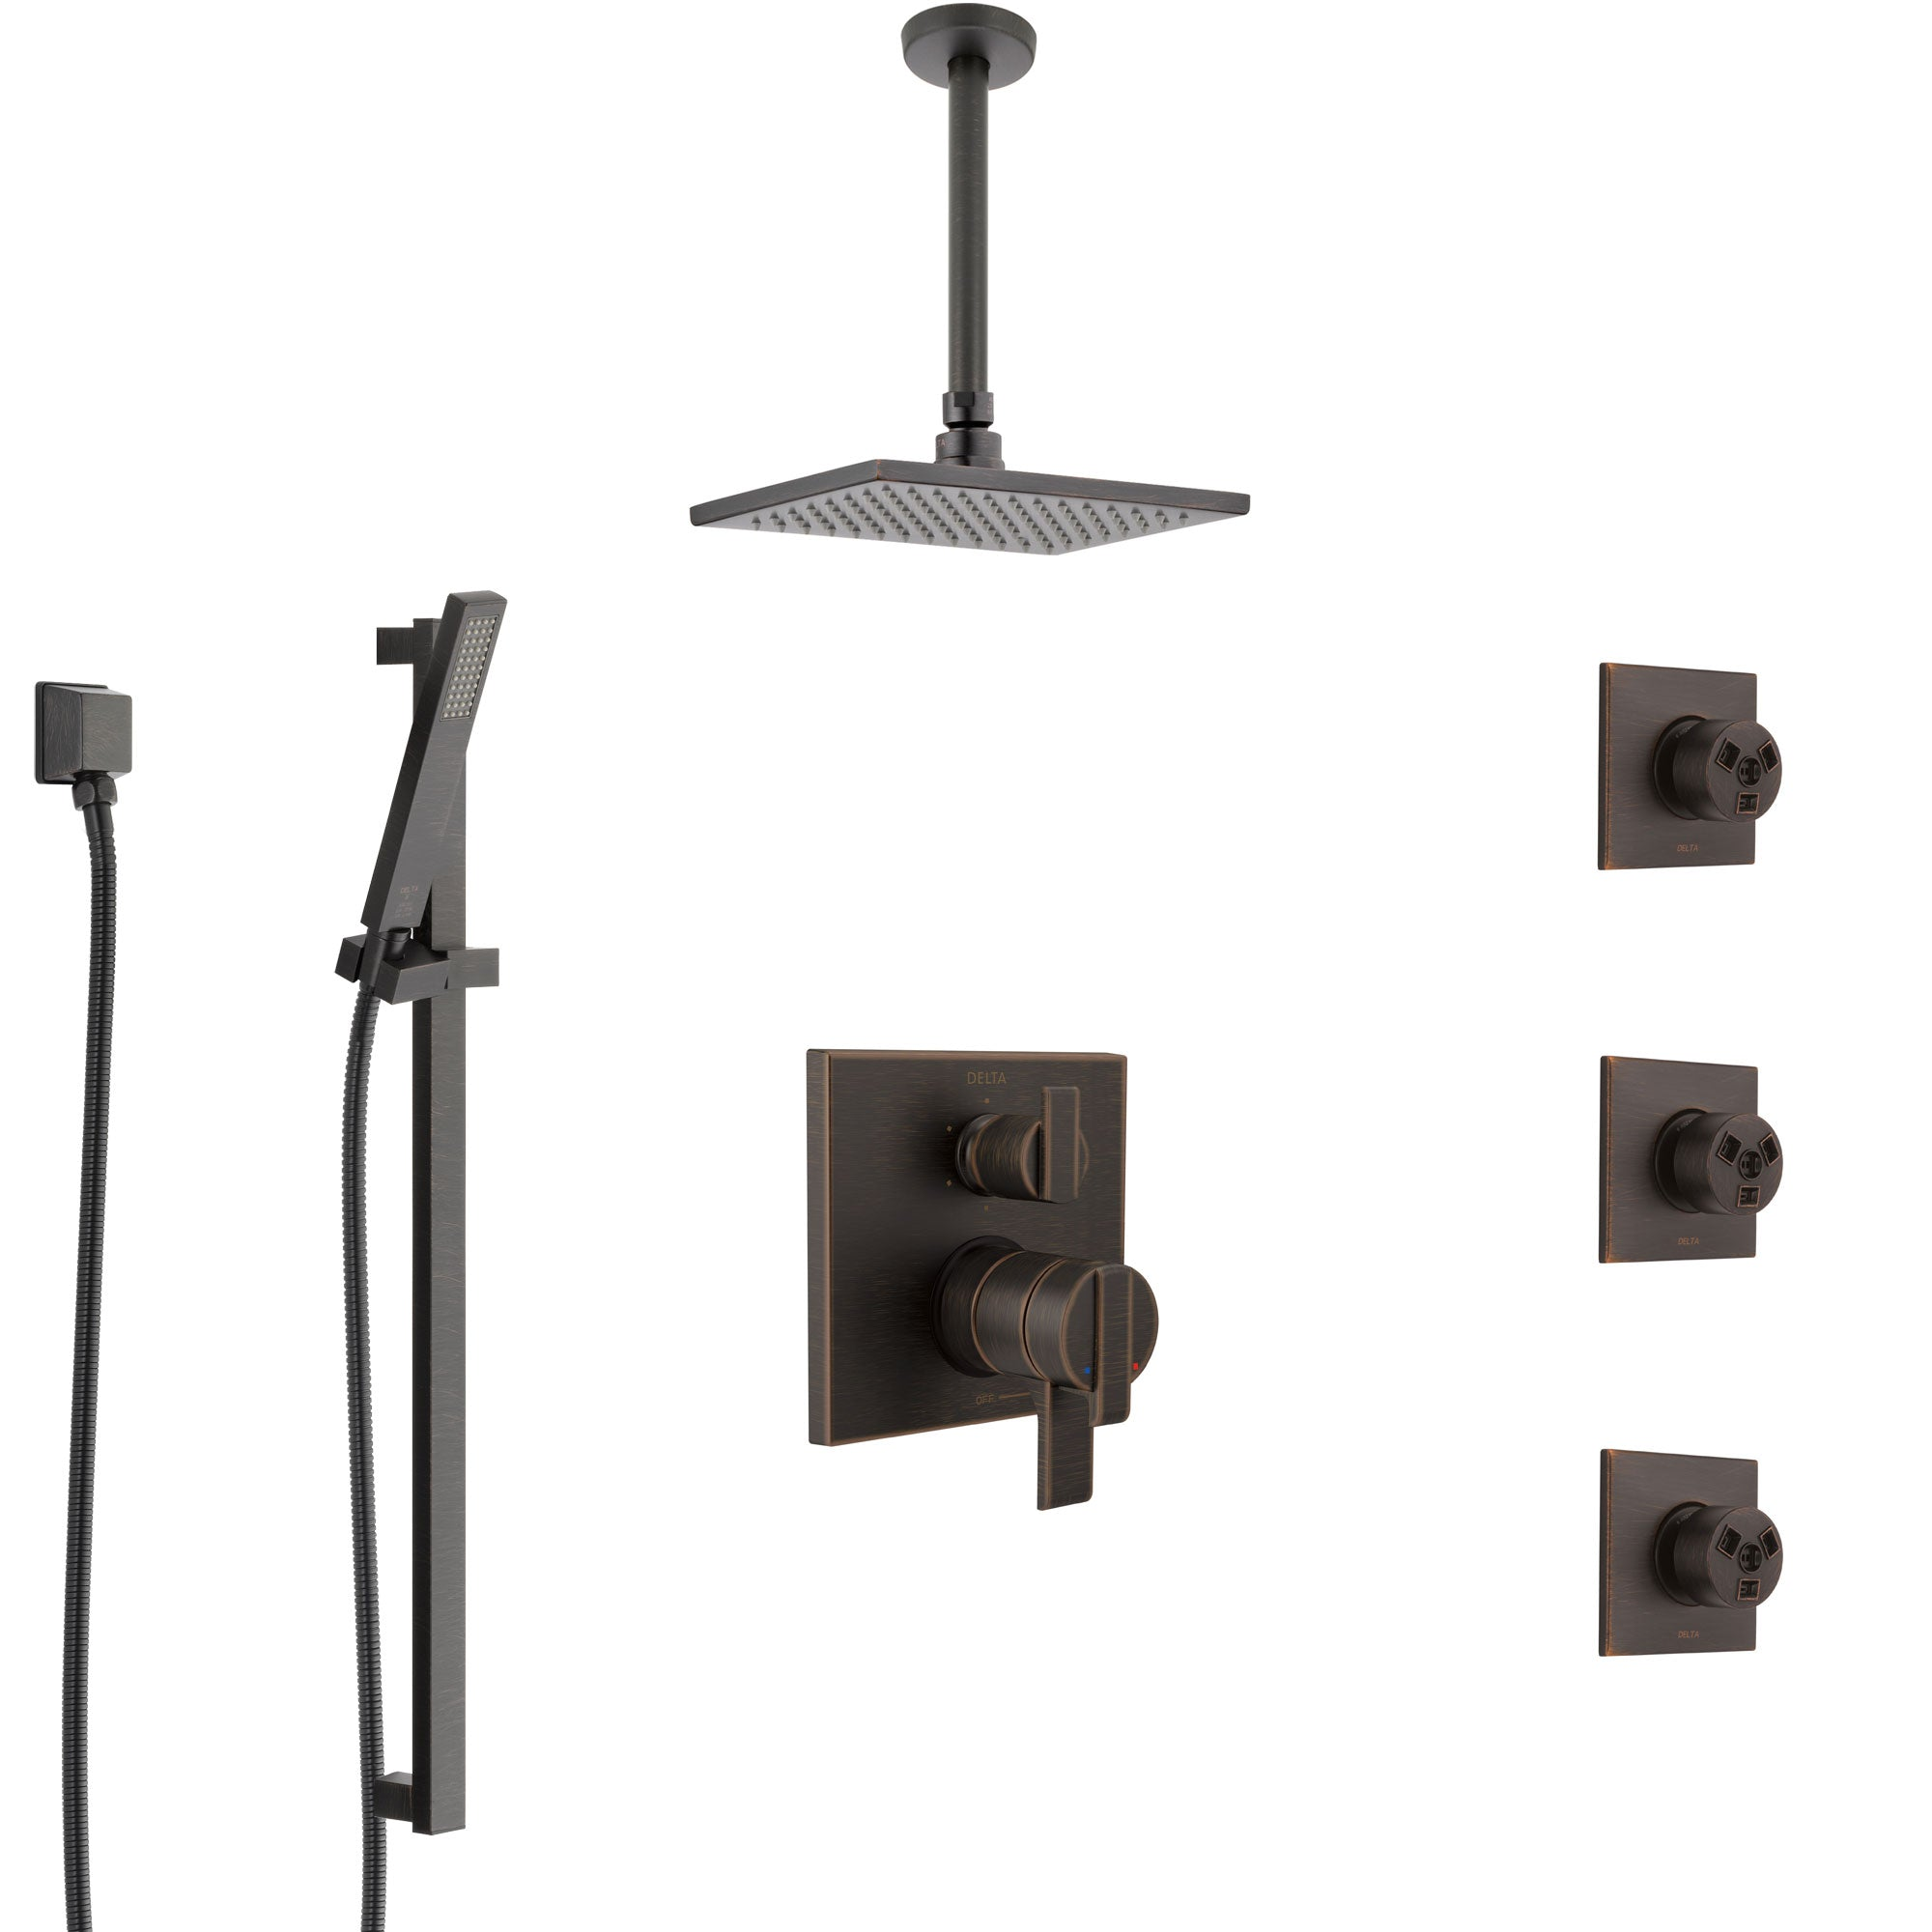 Delta Ara Venetian Bronze Shower System with Dual Control Handle, Integrated Diverter, Ceiling Showerhead, 3 Body Sprays, and Hand Shower SS27967RB3